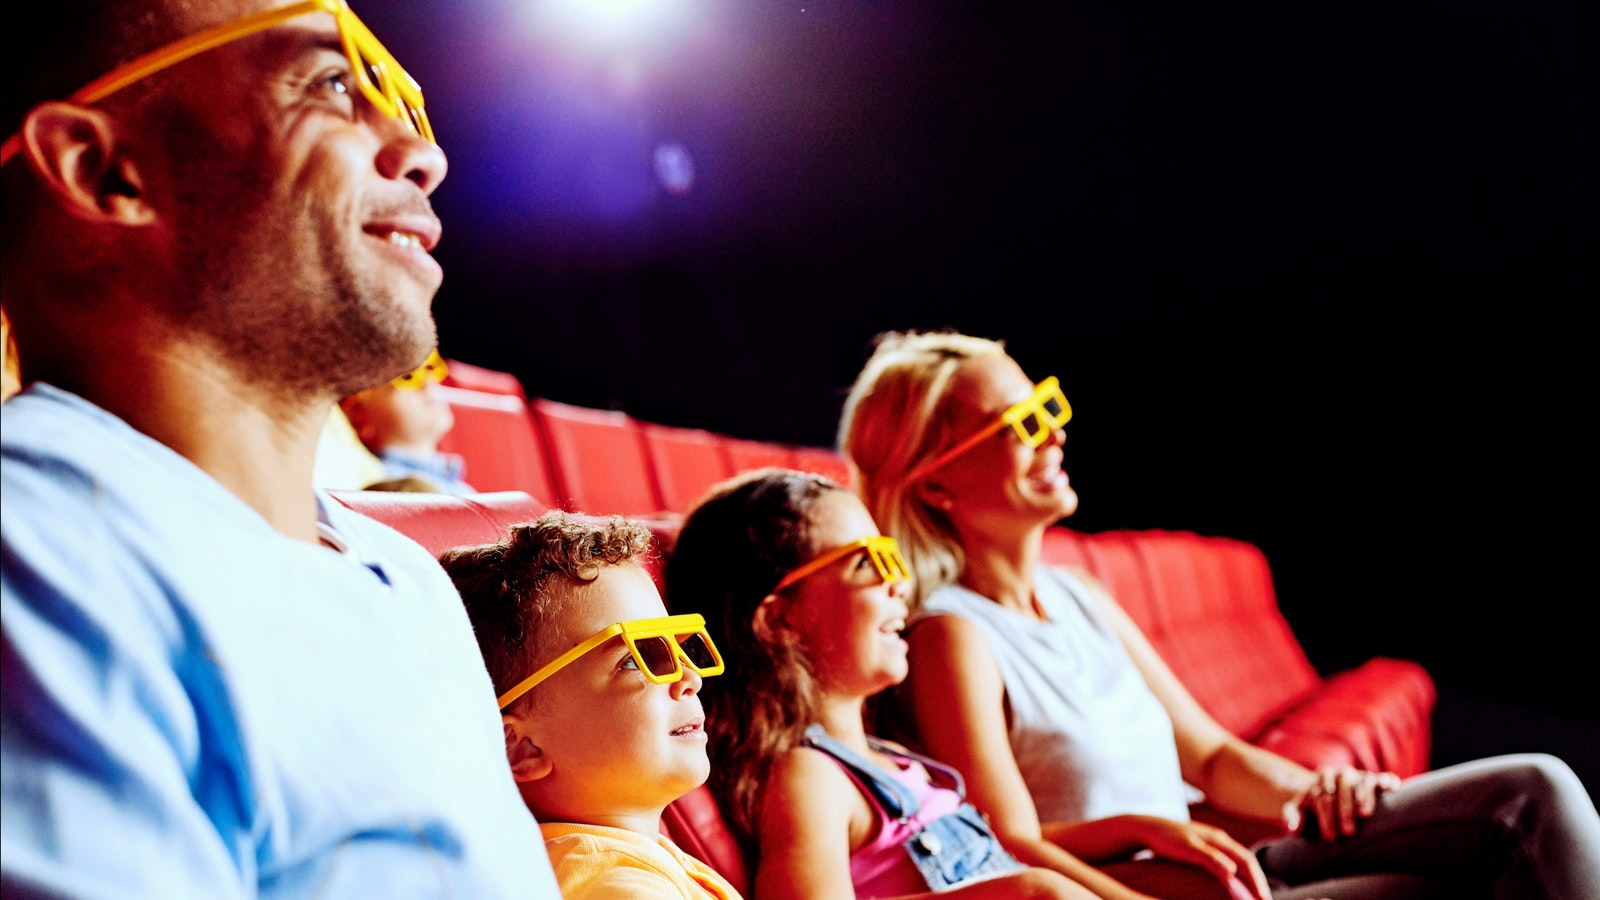 Watch whilst a 3D film changes before your eyes to a 4D cinema experience with rain, wind and snow